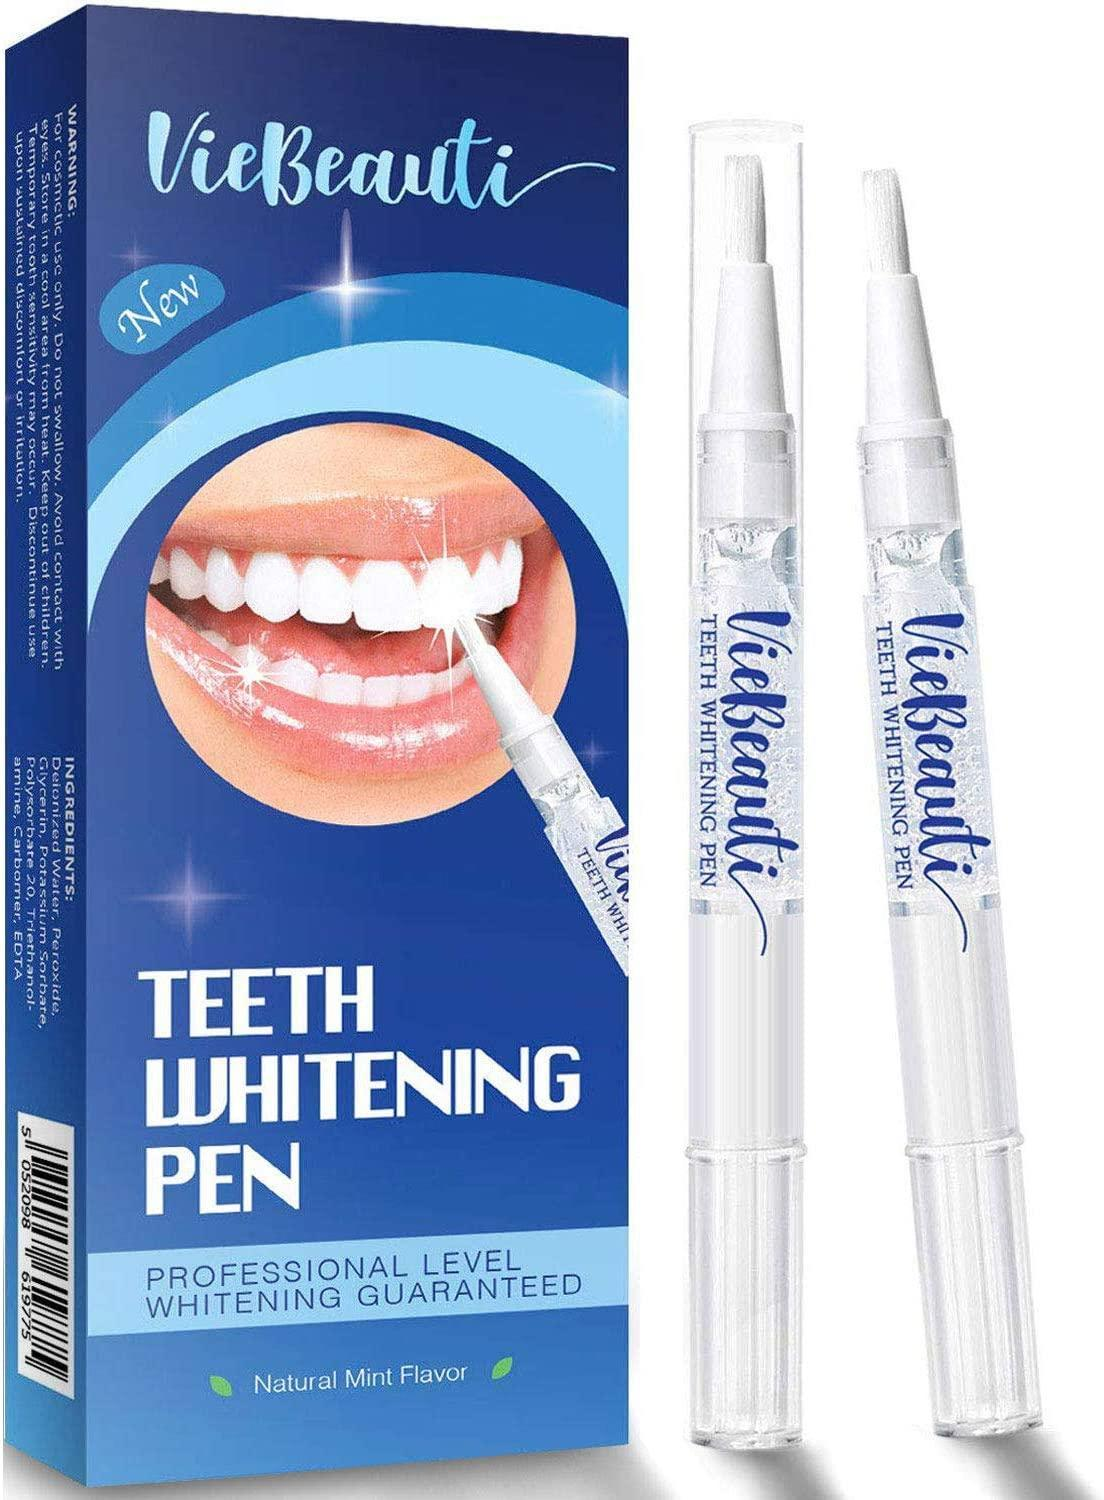 This Best Selling Teeth Whitening Pen Can Help Turn Back The Clock On Coffee And Wine Stains E Radio Usa